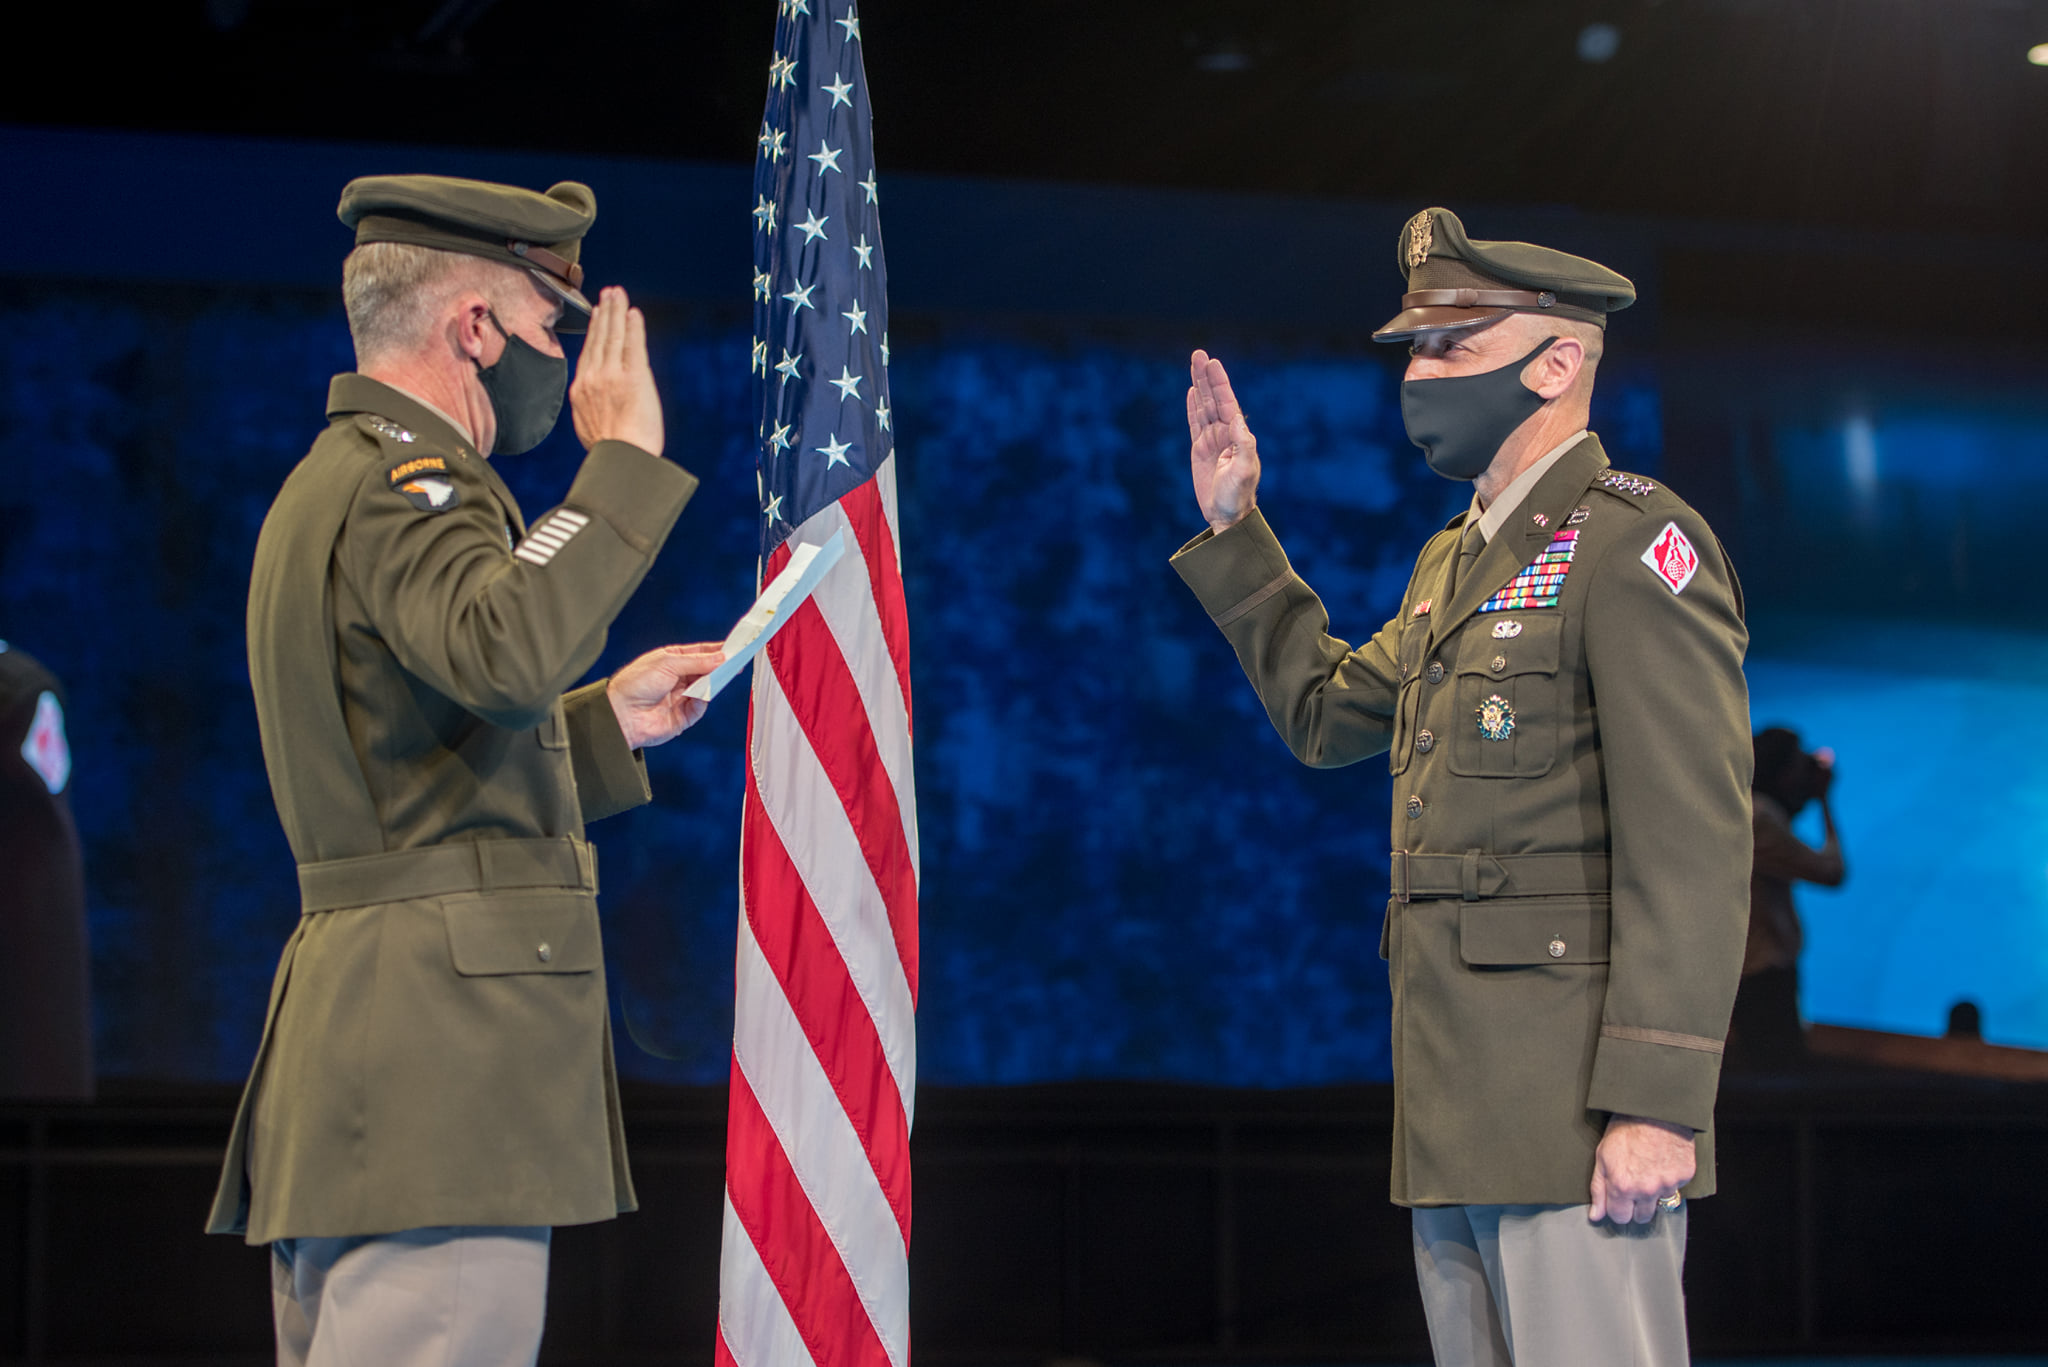 Lt. Gen Scott Spellmon was sworn in as Chief of Engineers September 10 in a change of command ceremony, replacing Lt. Gen. Todd Semonite, who retired. (Corps of Engineers photo)